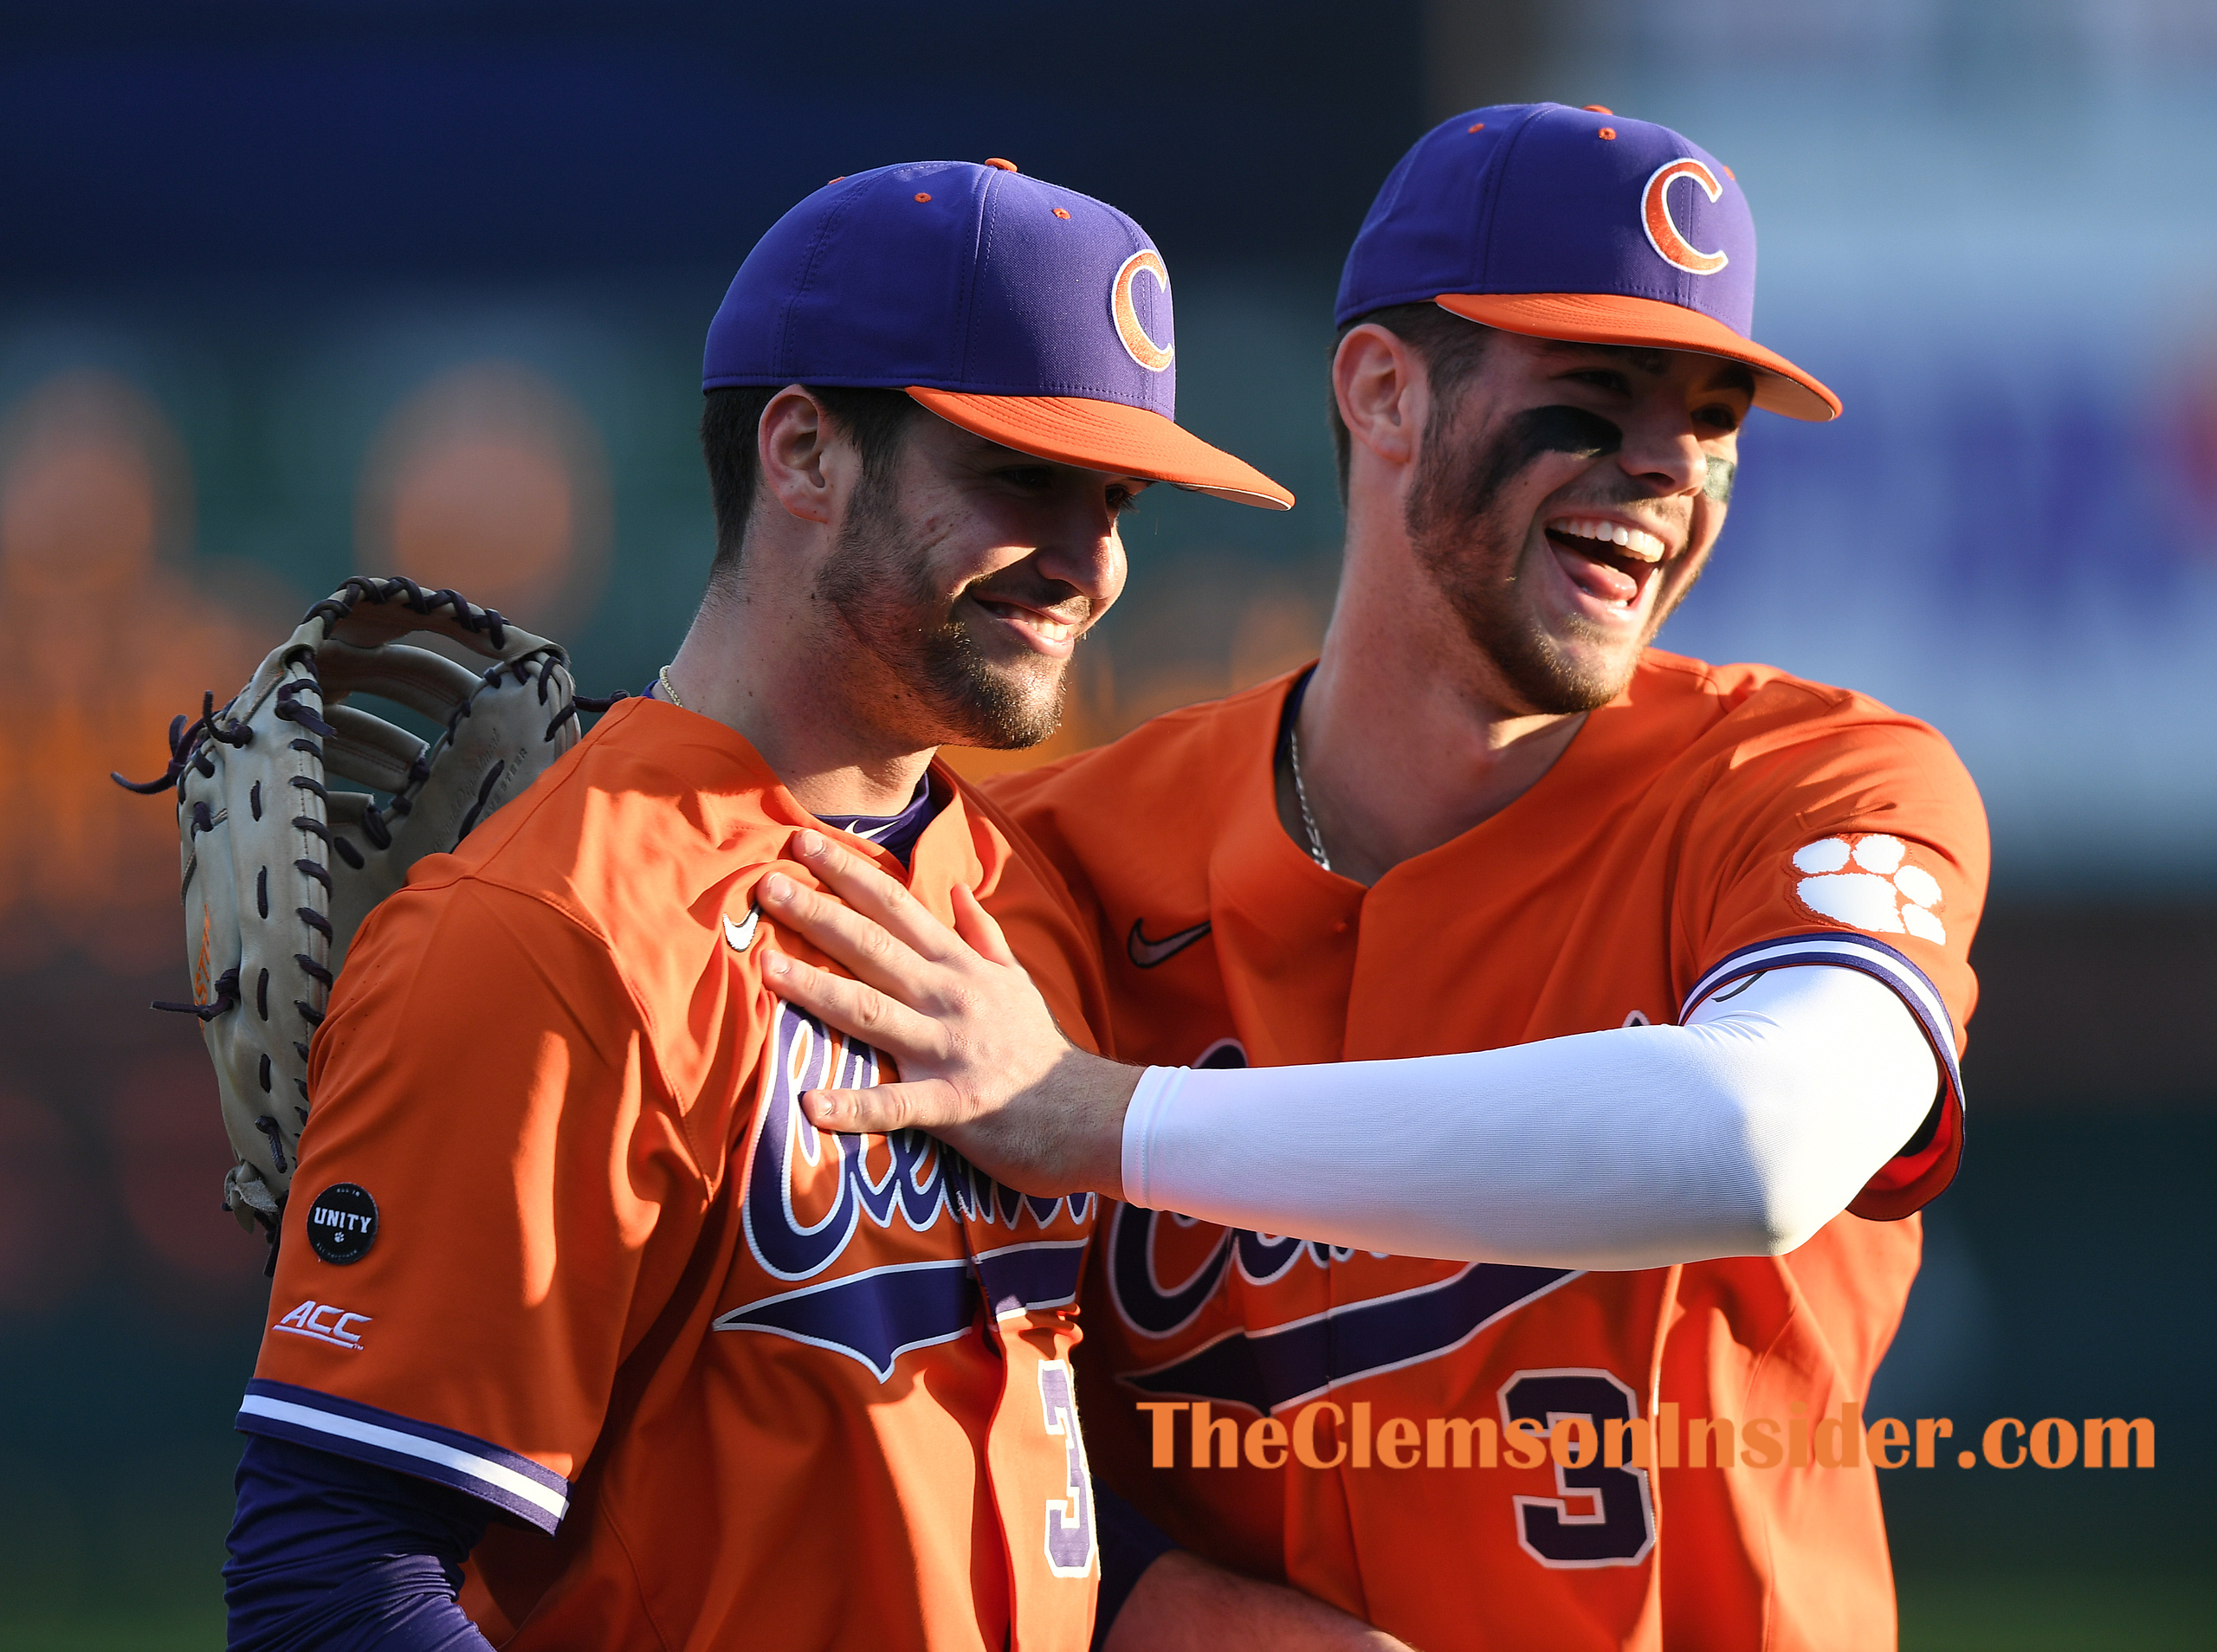 Clemson DH Davis Sharpe (30) is congratulated by teammate pitcher Caden Grice (31) as he leaves the game against Cincinnati during the Tiger's home opener on Friday, February 19, 2021 at Clemson's Doug Kingsmore Stadium. Bart Boatwright/The Clemson Insider